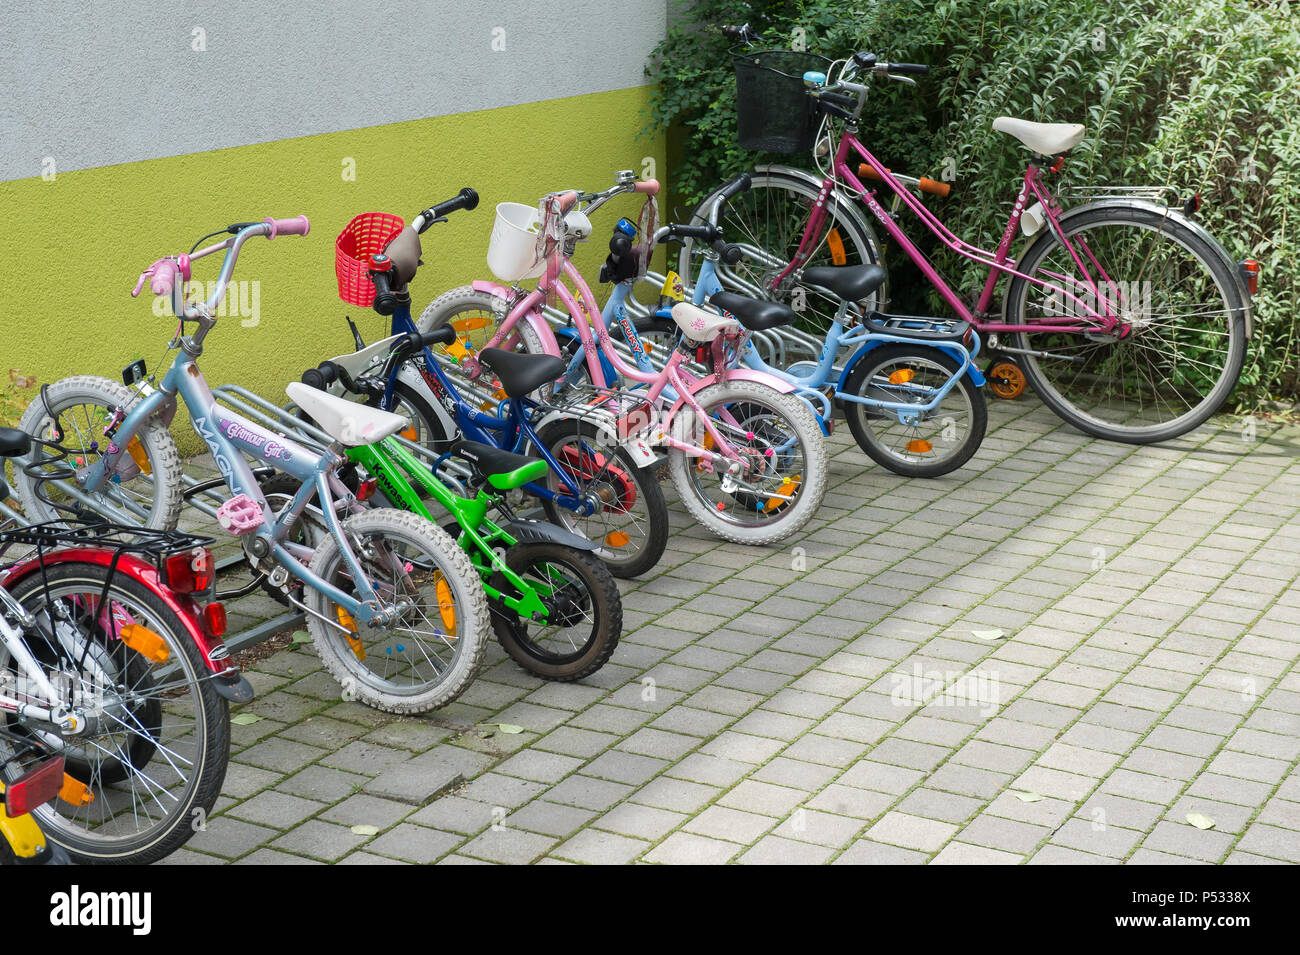 various sizes of bicycles in front of a daycare - Stock Image